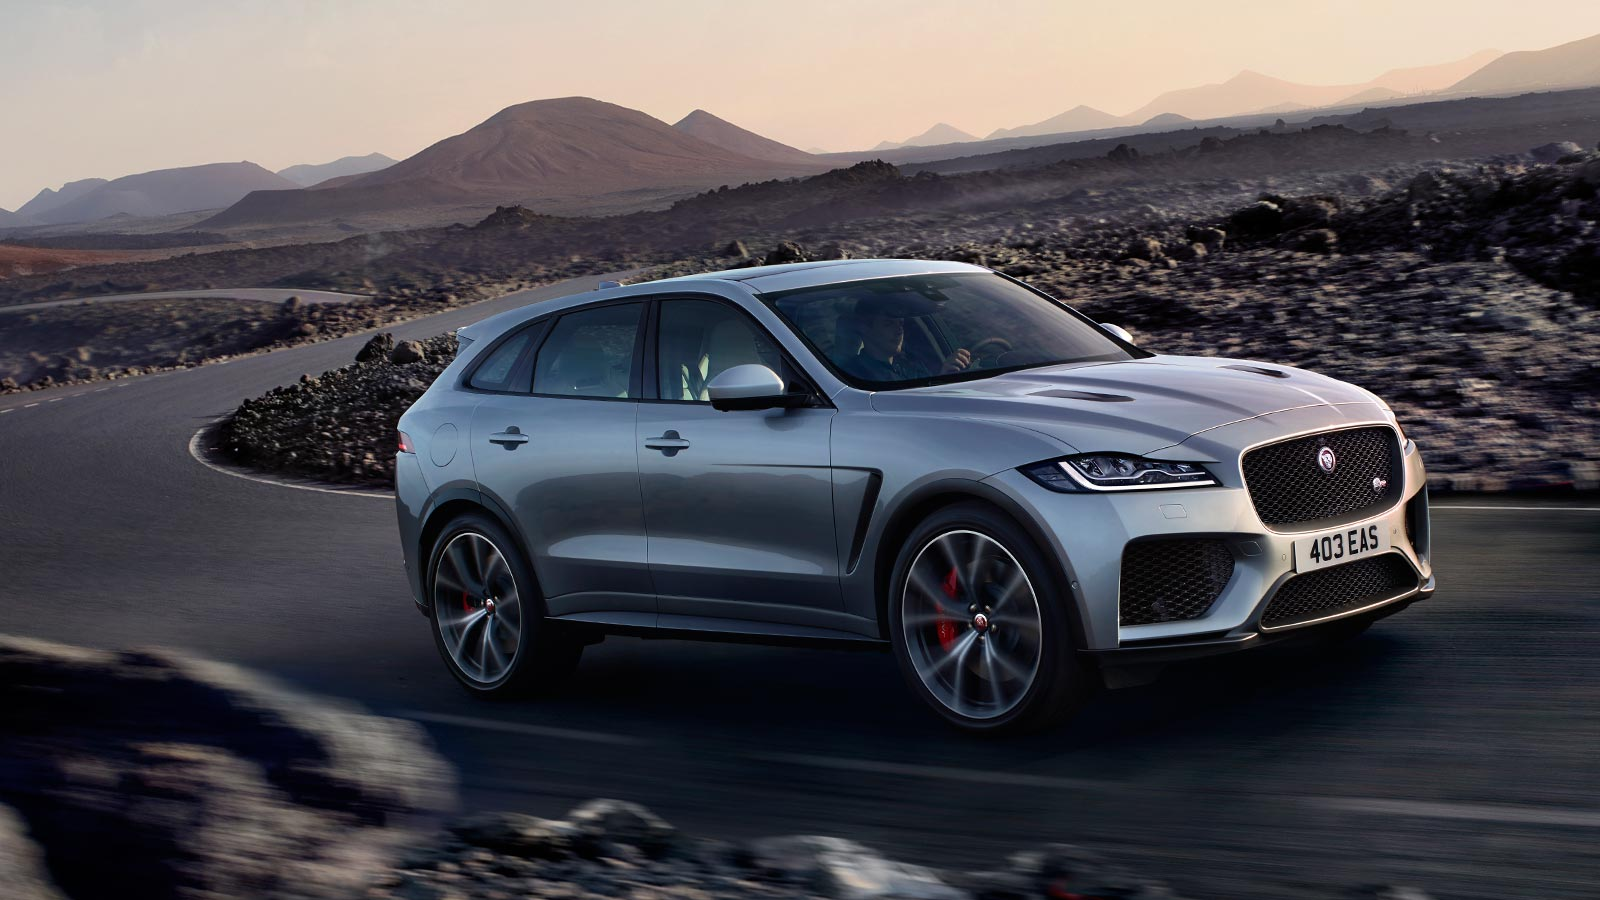 Grey Jaguar F-PACE SVR driven on desert open road